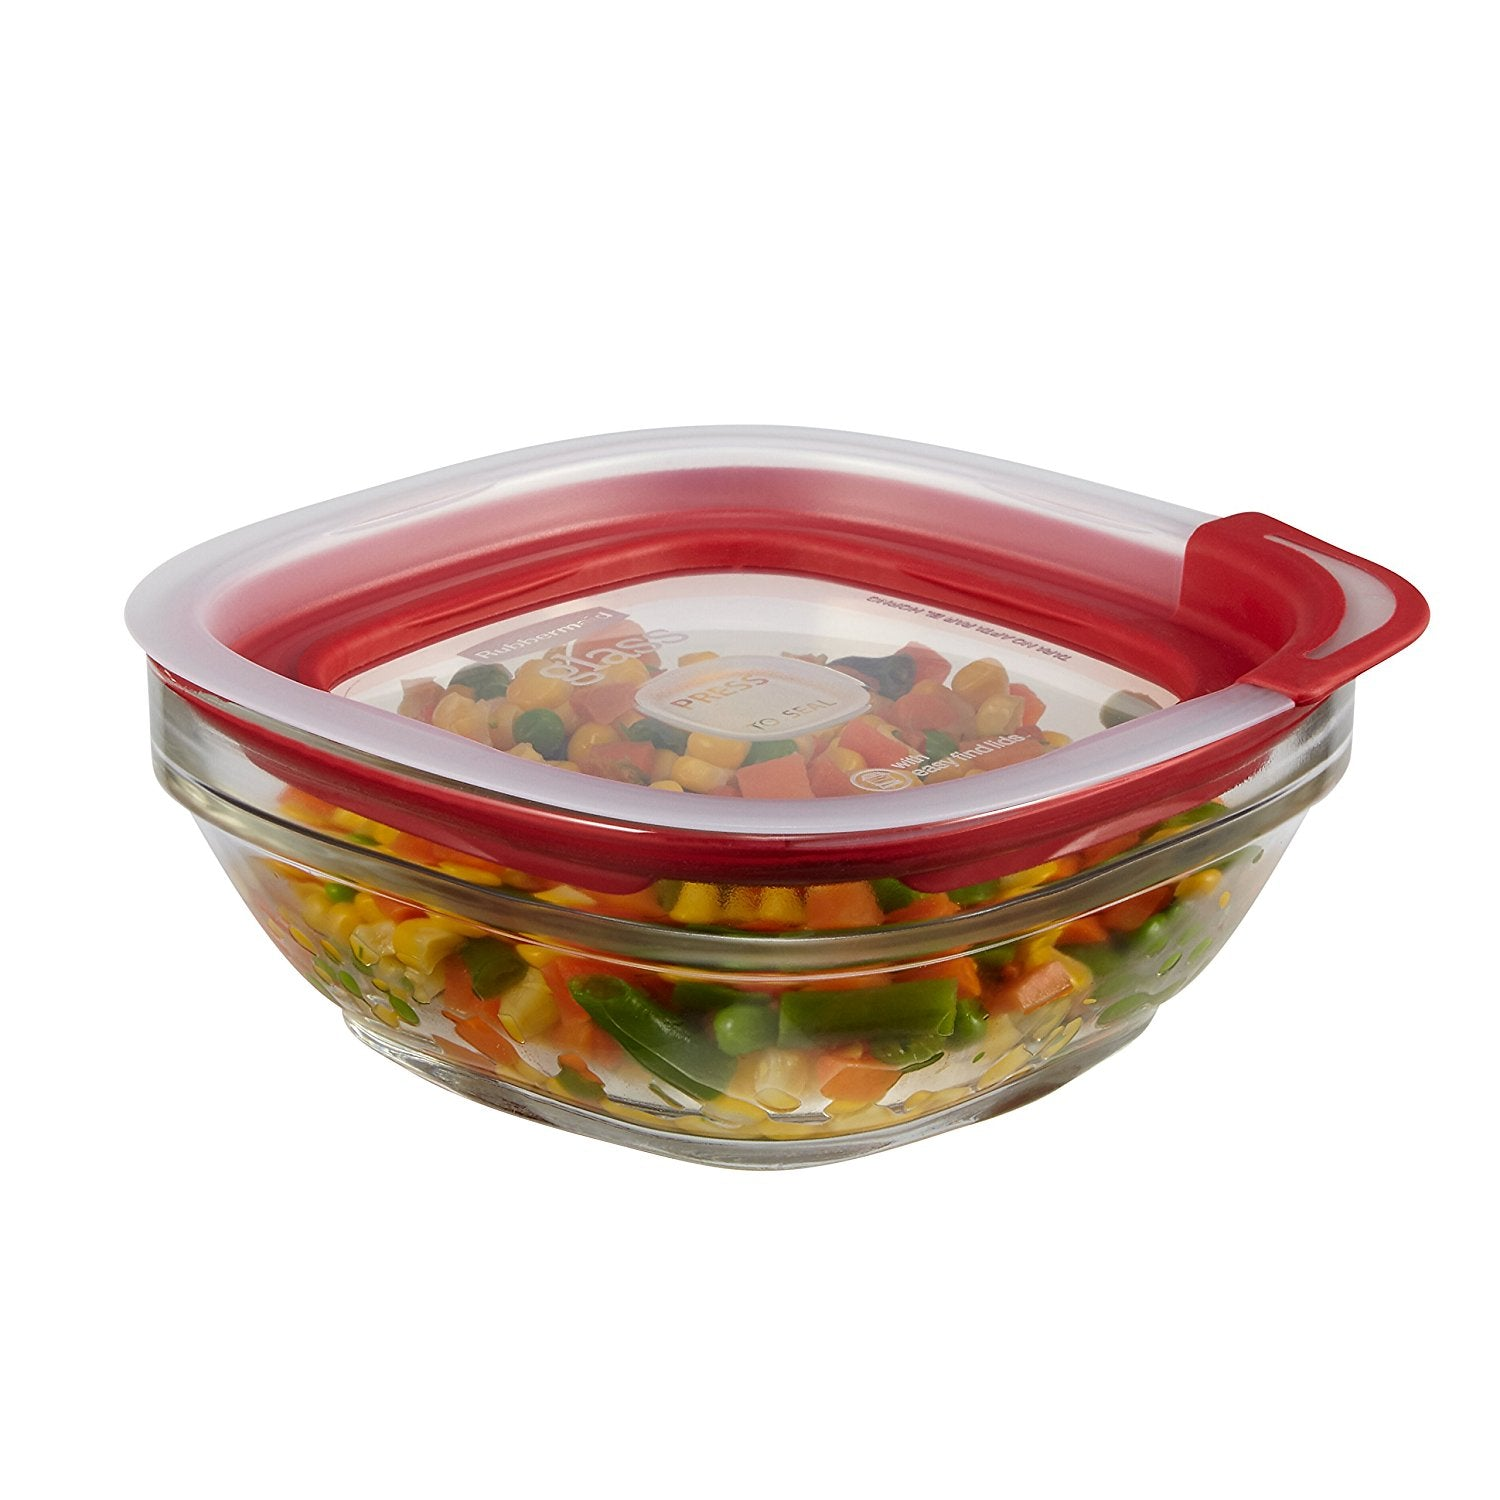 Rubbermaid 2 12 Cup Glass Food Storage Container with Easy Find Lid